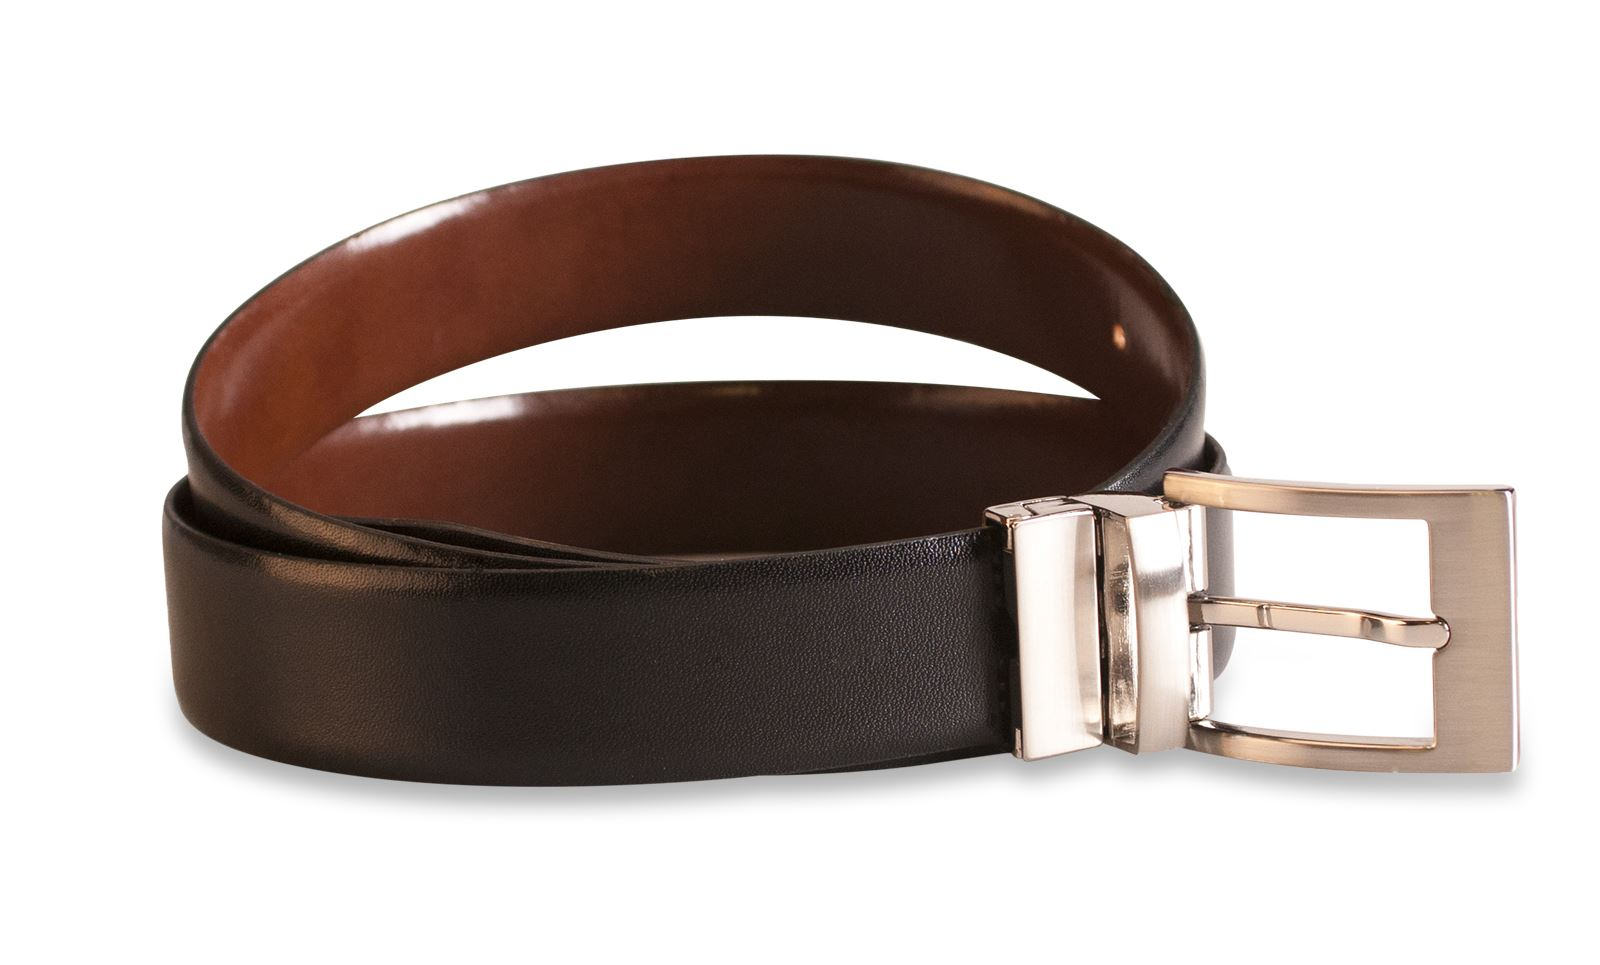 You've probably been choosing the wrong belts for men. Instead of busting you, I'll explain the easy way to pick a great belt every time. This is a hold-up! You've probably been choosing the wrong belts for men. My thin work belt tends to sag at the middle. Will a thicker and wider belt resolve this? Reply. VegardHanssen says: May 1,